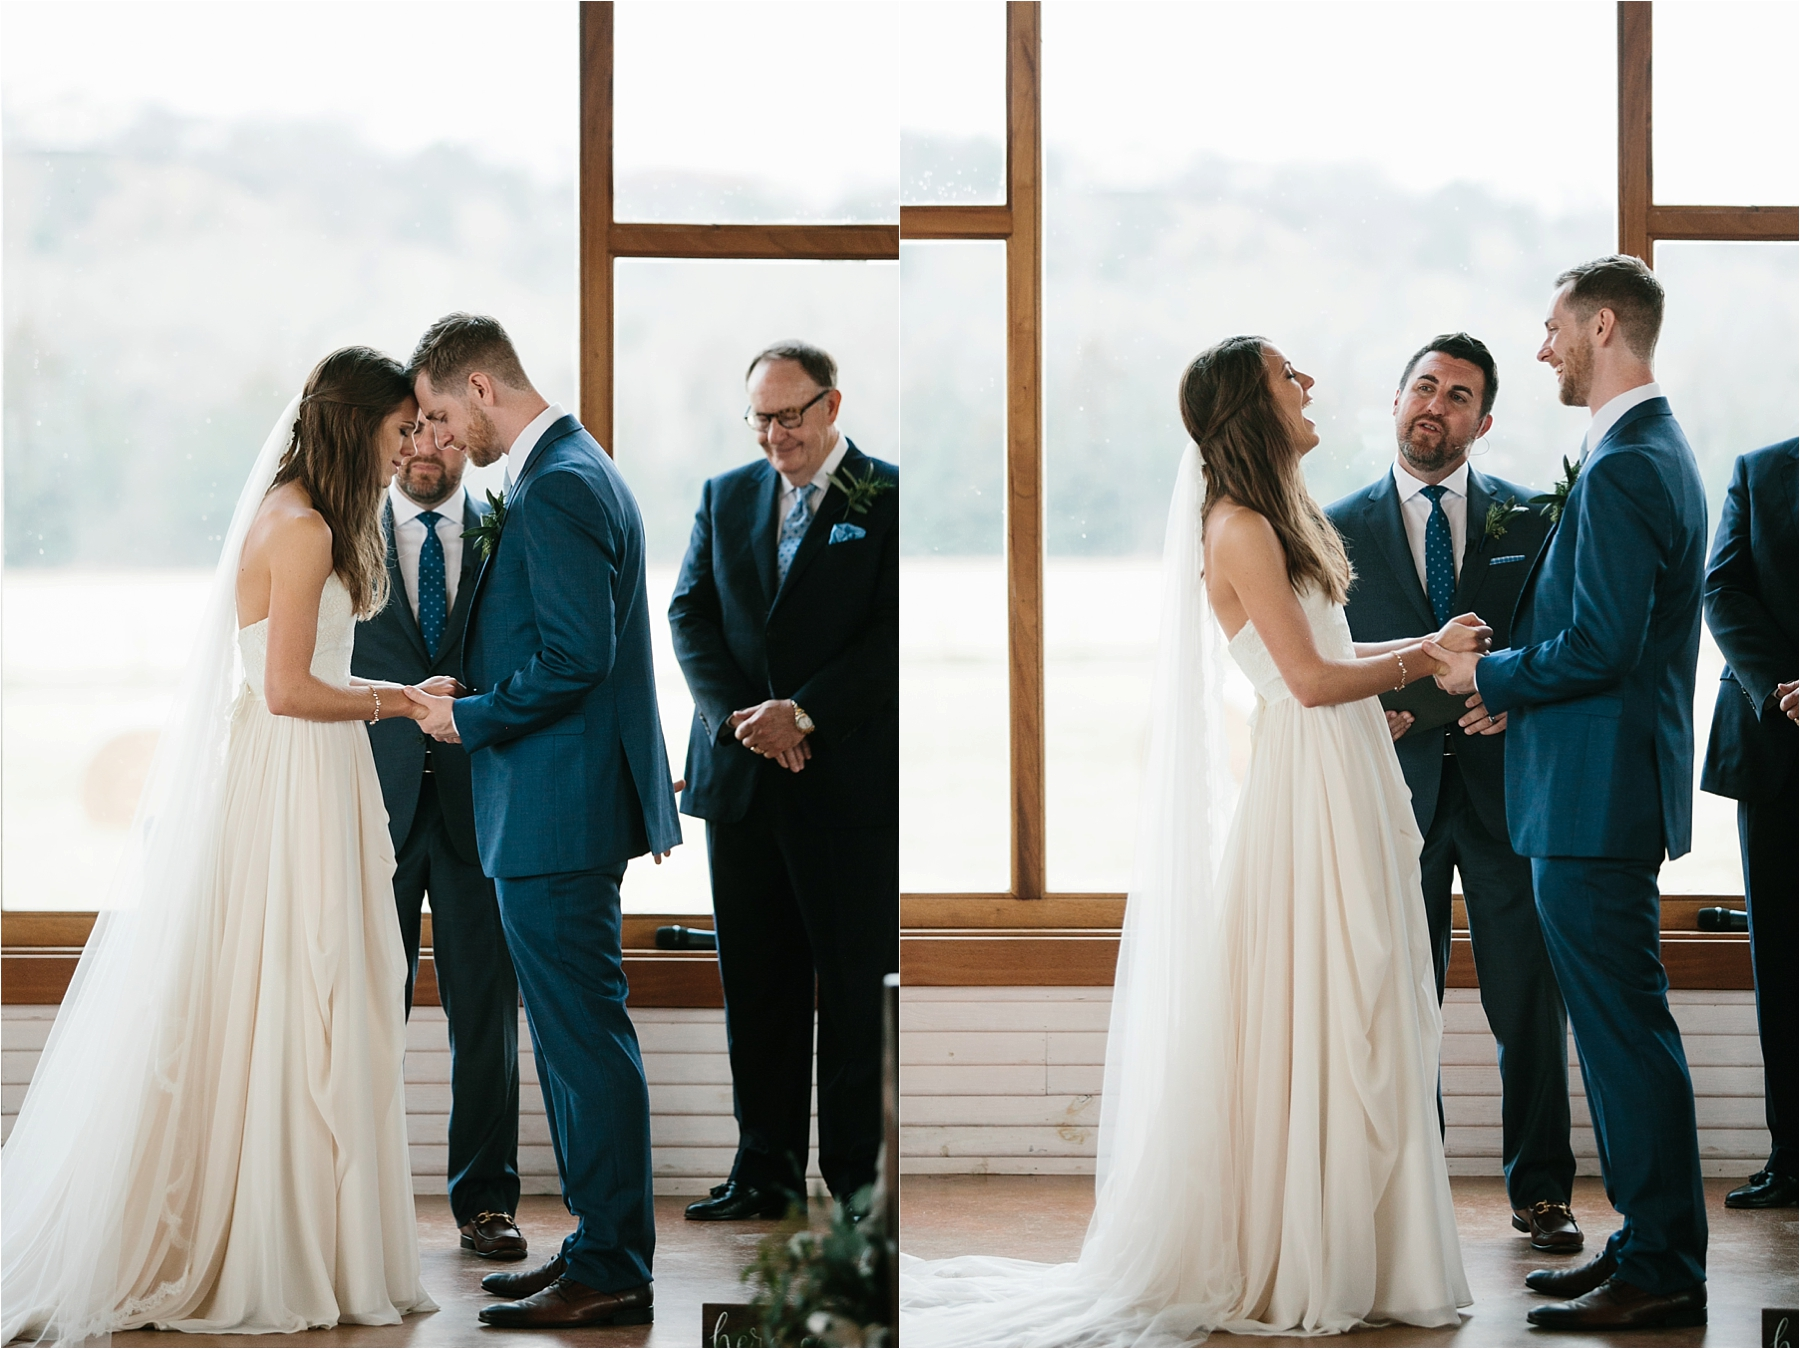 Lauren + Matt __ an intimate, emotional, blush pink, navy blue, and greenery toned wedding accents at the Brooks at Weatherford by North Texas Wedding Photographer Rachel Meagan Photography136